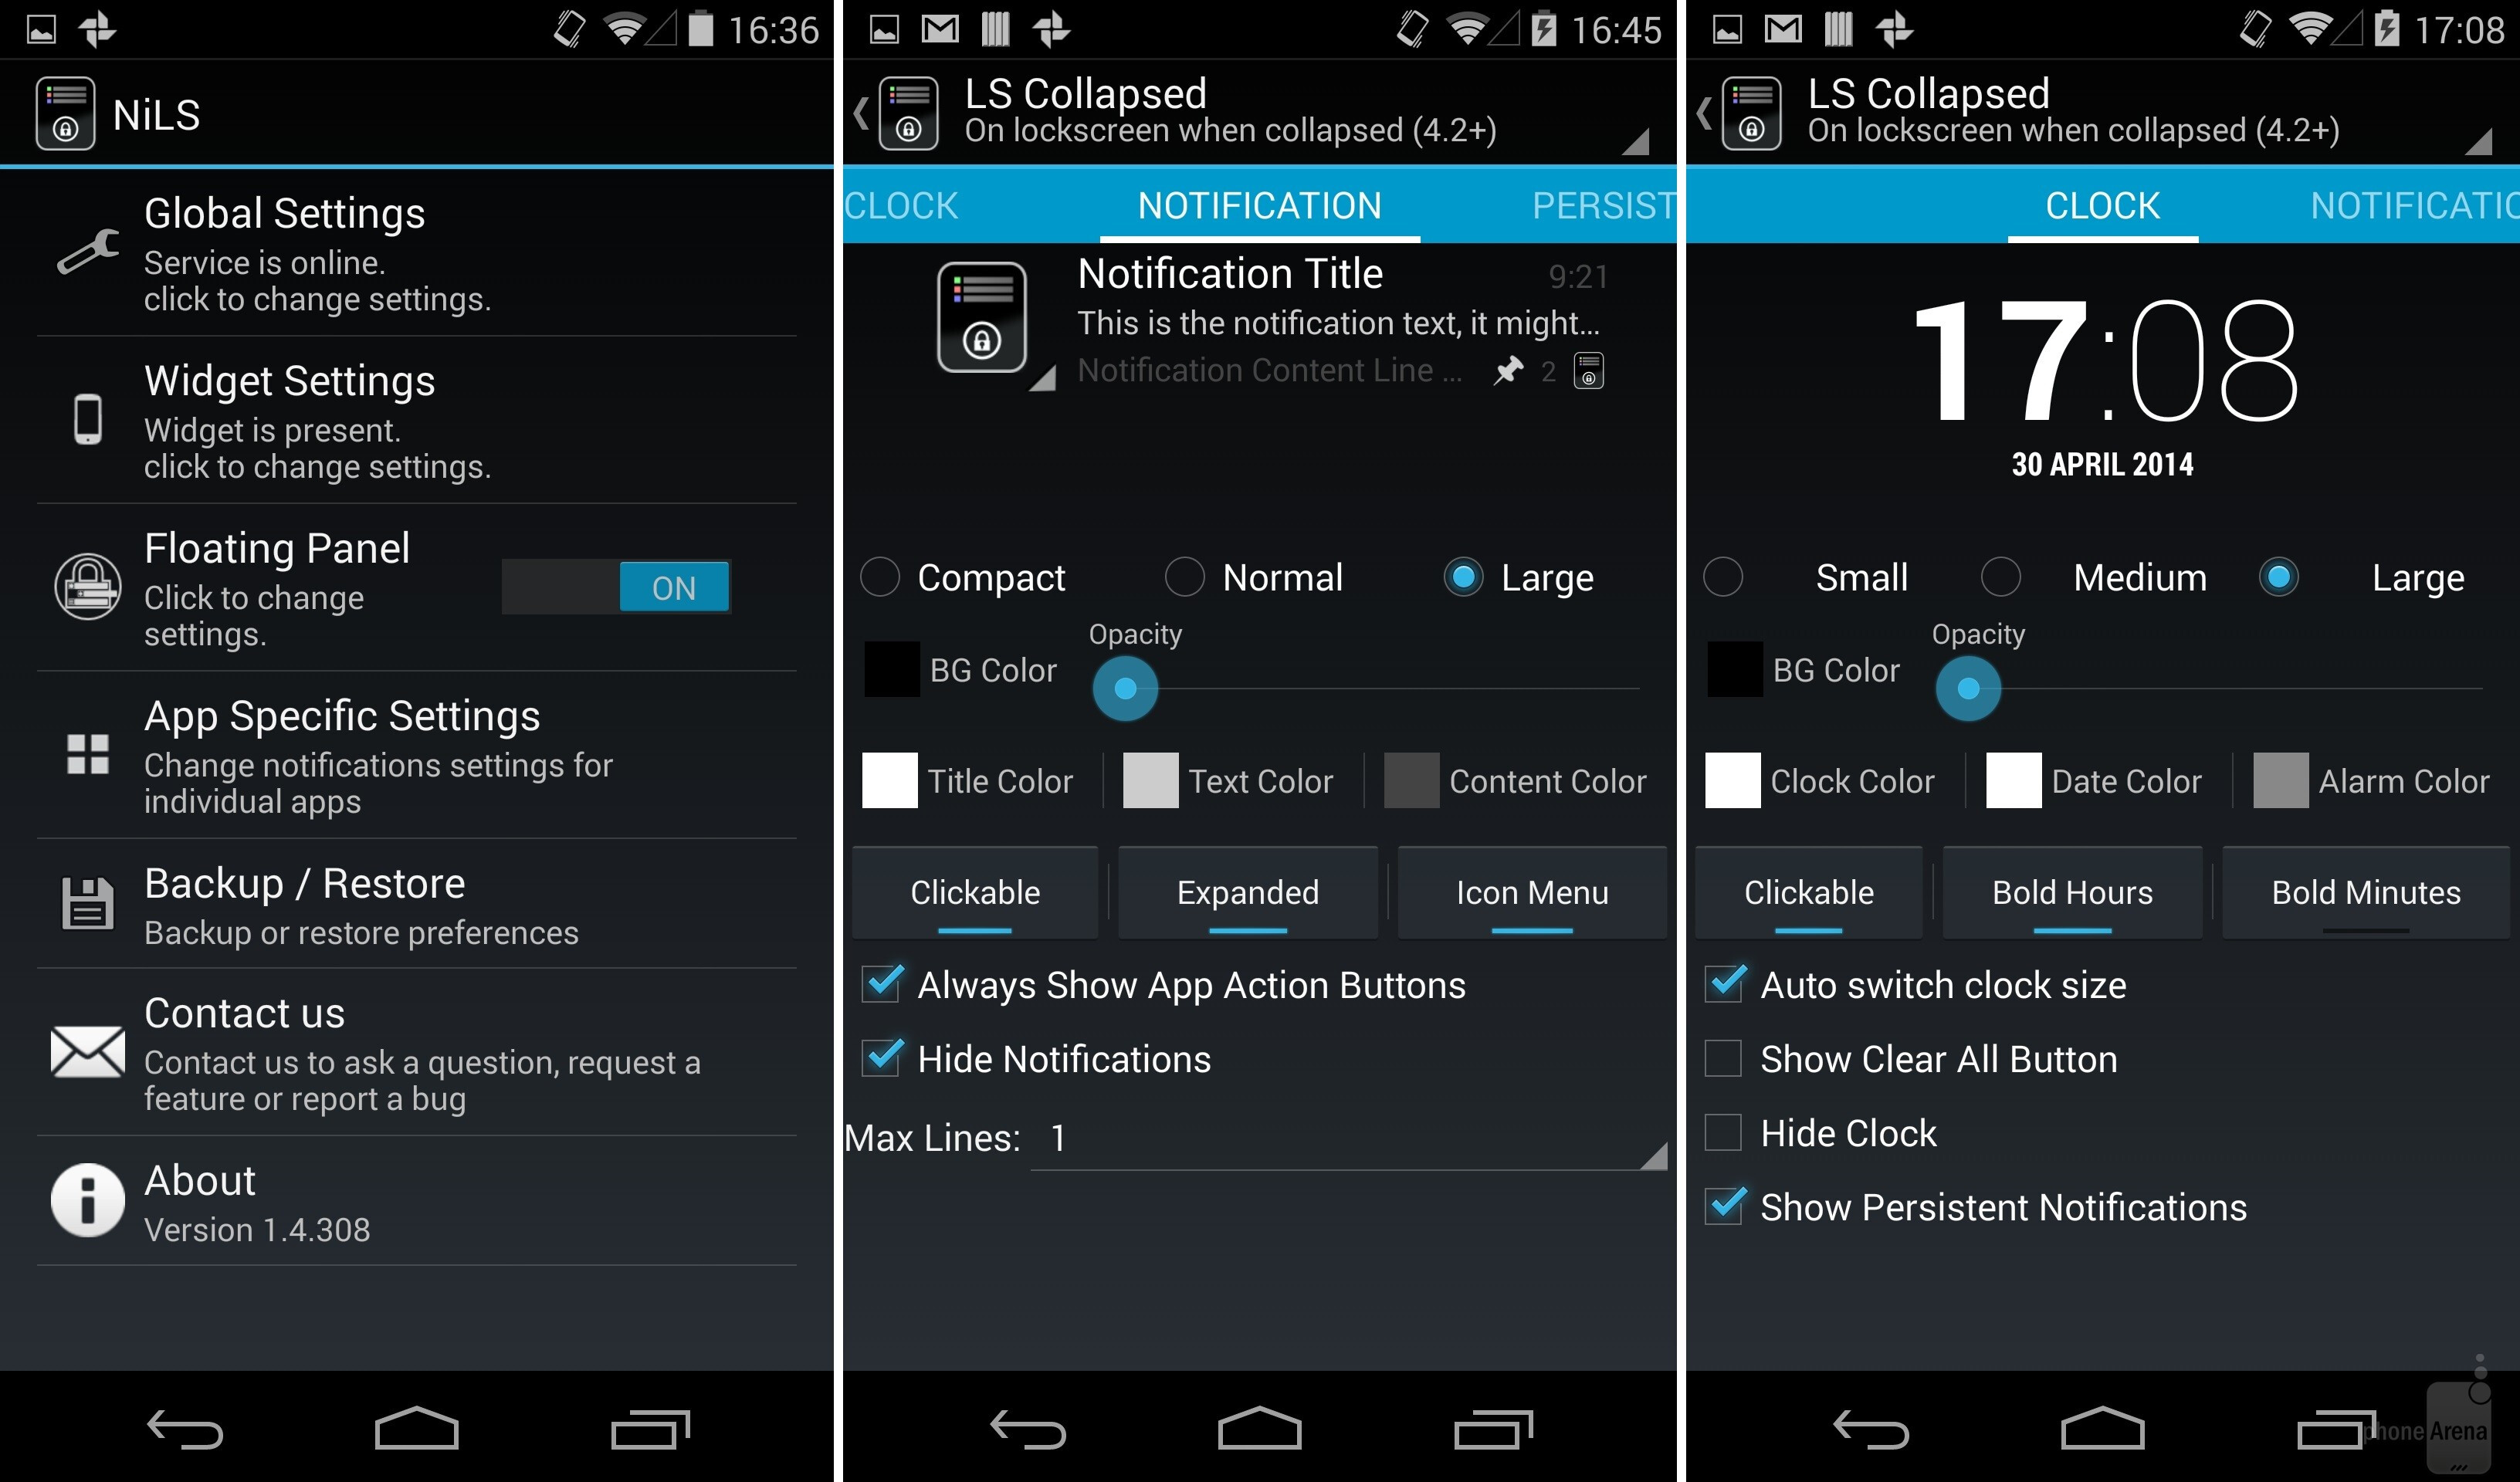 Spruce Up Your Old Mobile With A New Lock Screen Look: How To Set Up Actionable, IOS-like Lockscreen Notifcations